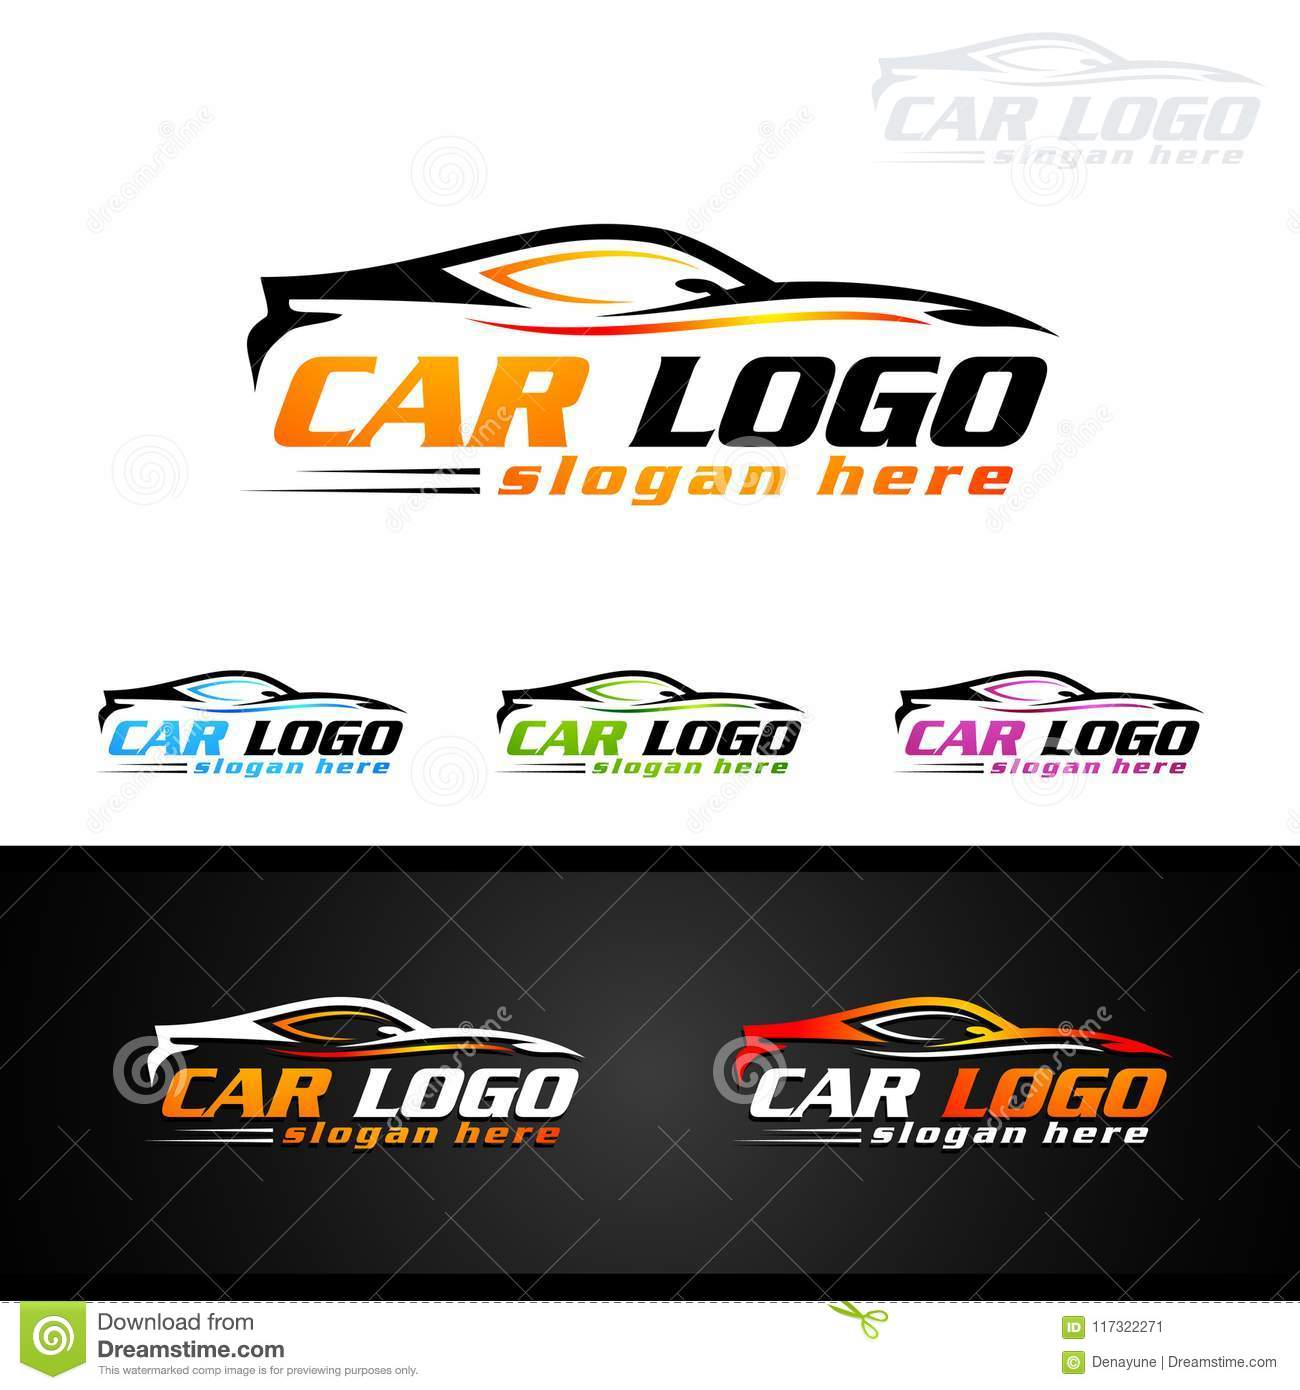 Luxury Sports Car Logos: Auto Car Logo For Sport Cars, Rent, Wash Or Mechanic Stock